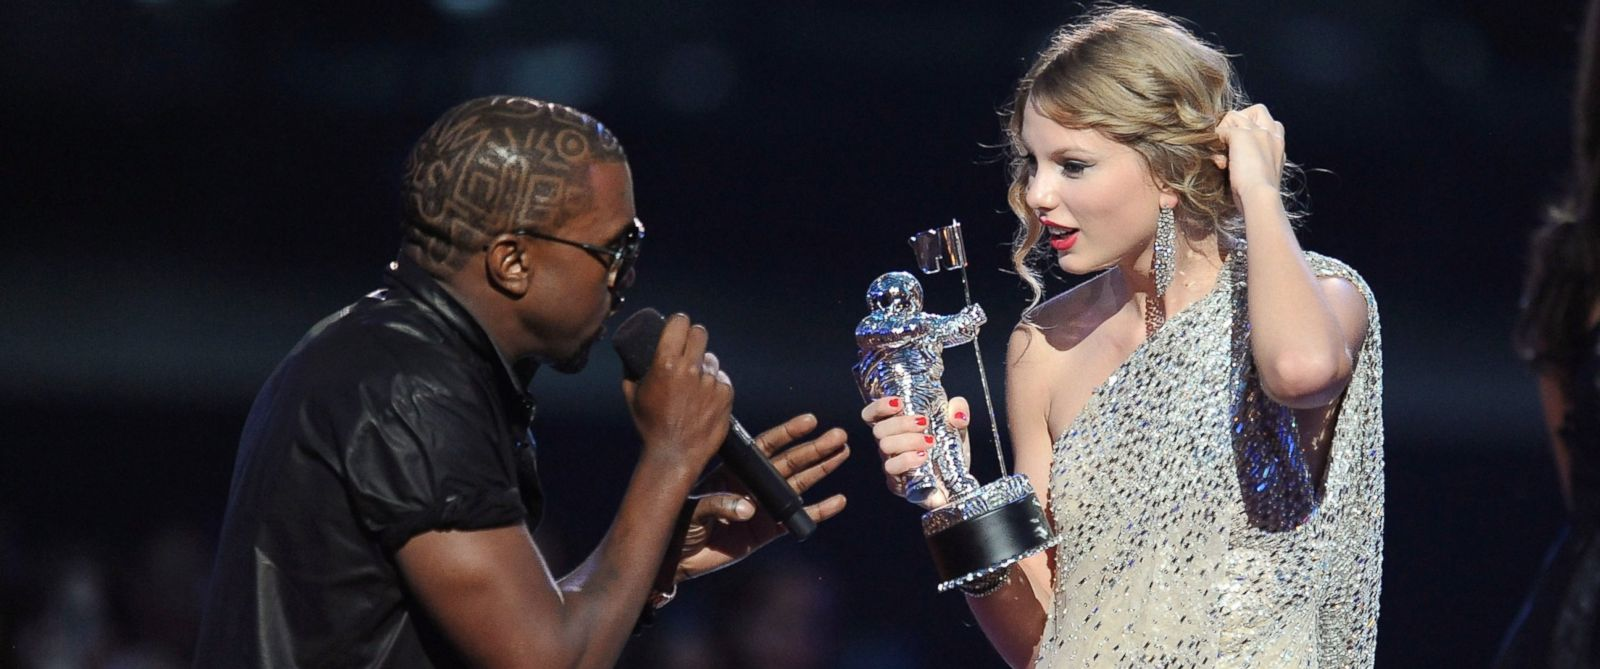 PHOTO: Kanye West takes the microphone from Taylor Swift and speaks onstage during the 2009 MTV Video Music Awards on Sept. 13, 2009, in New York City.